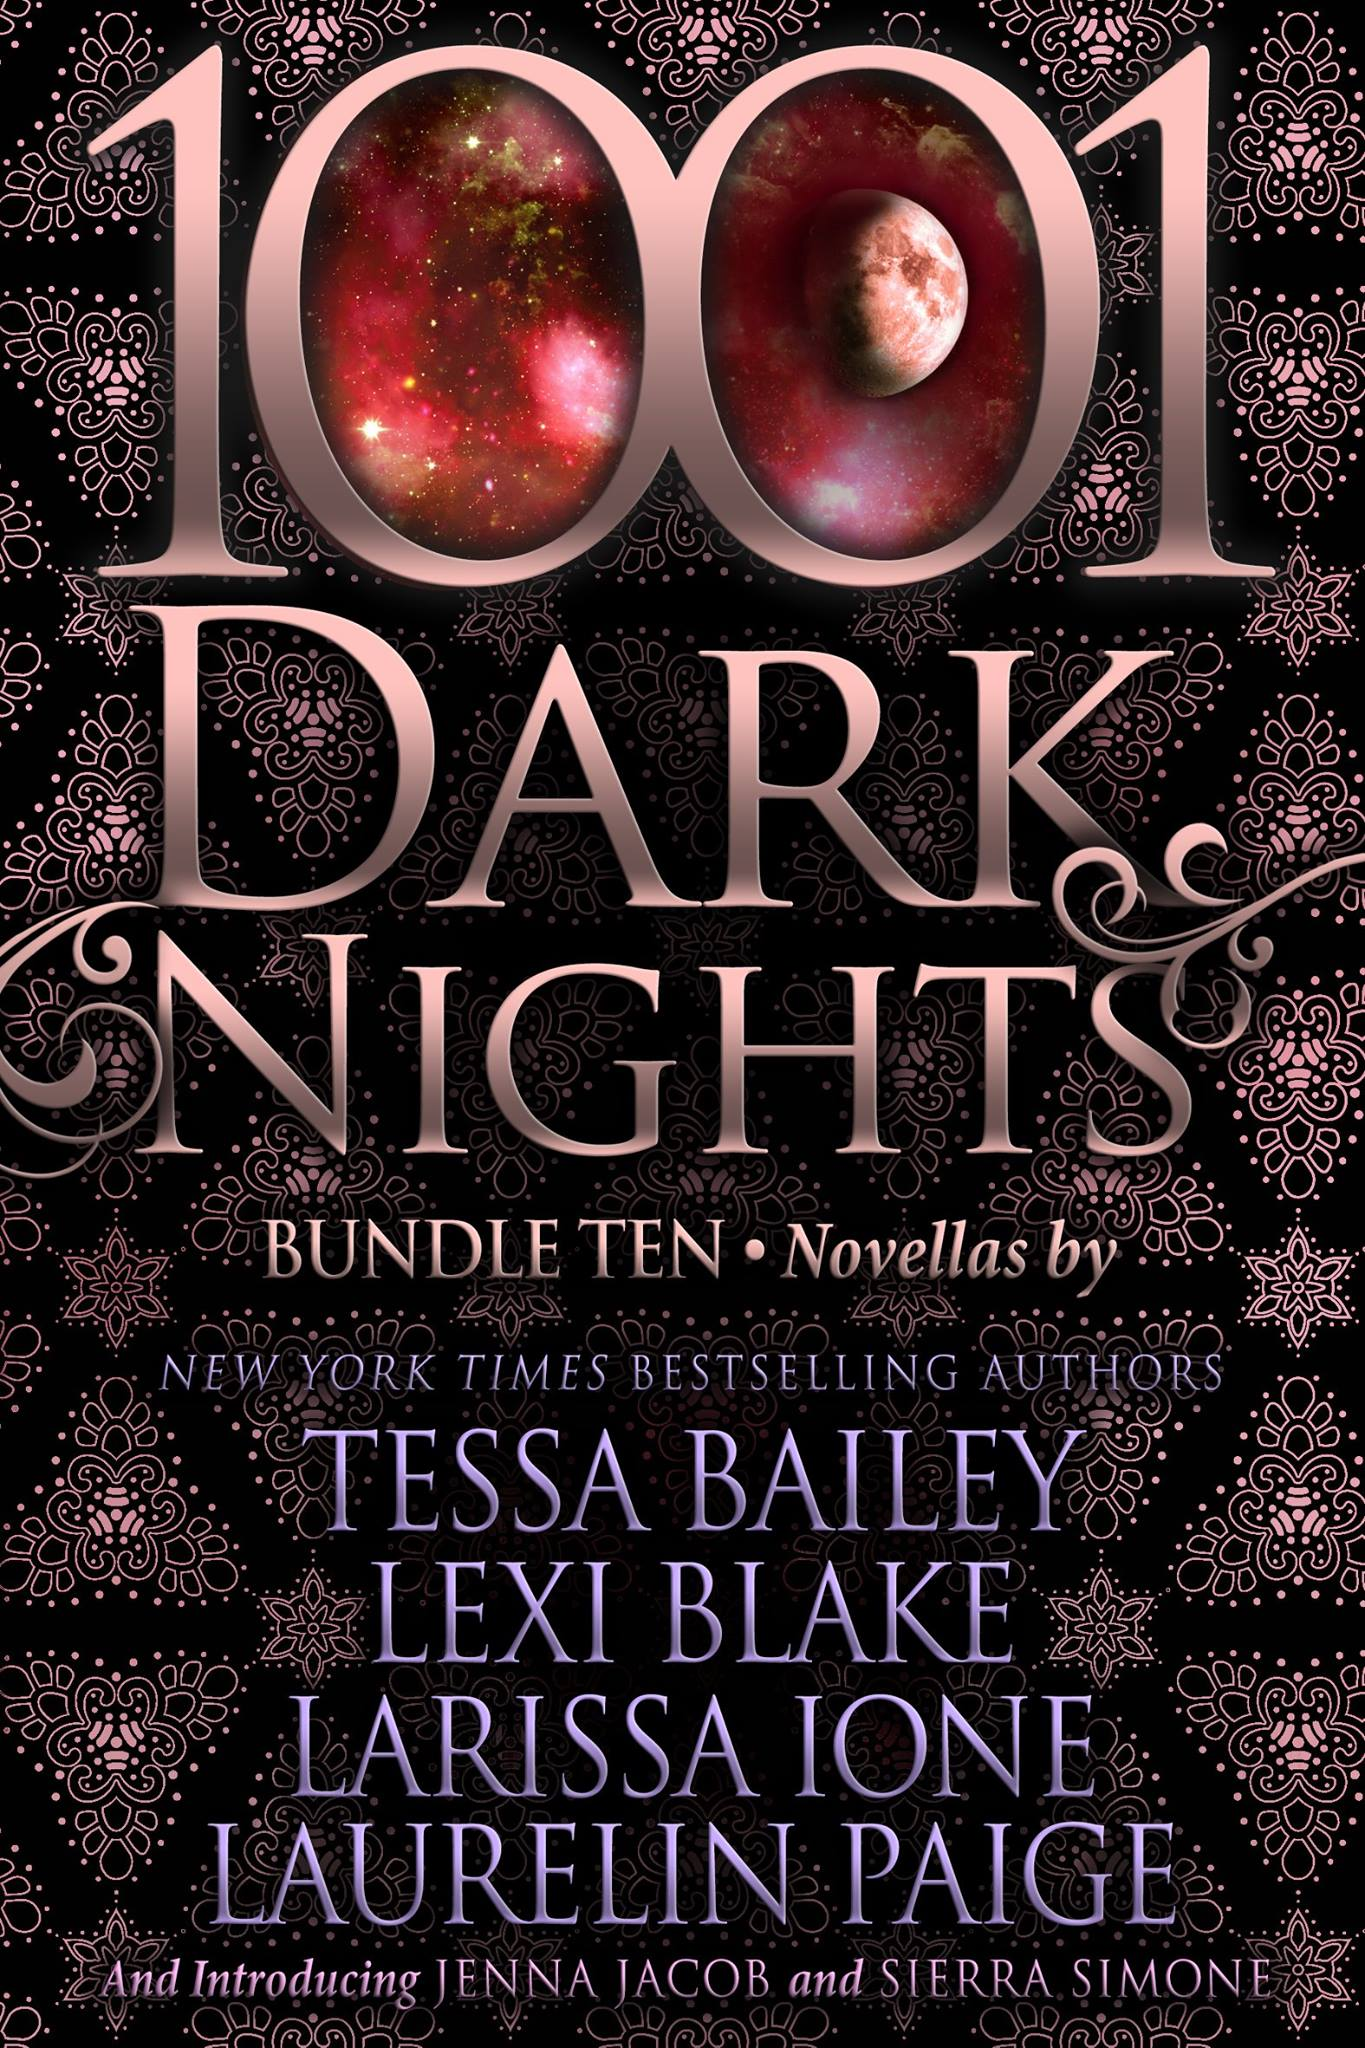 1001 Dark Nights Bundle